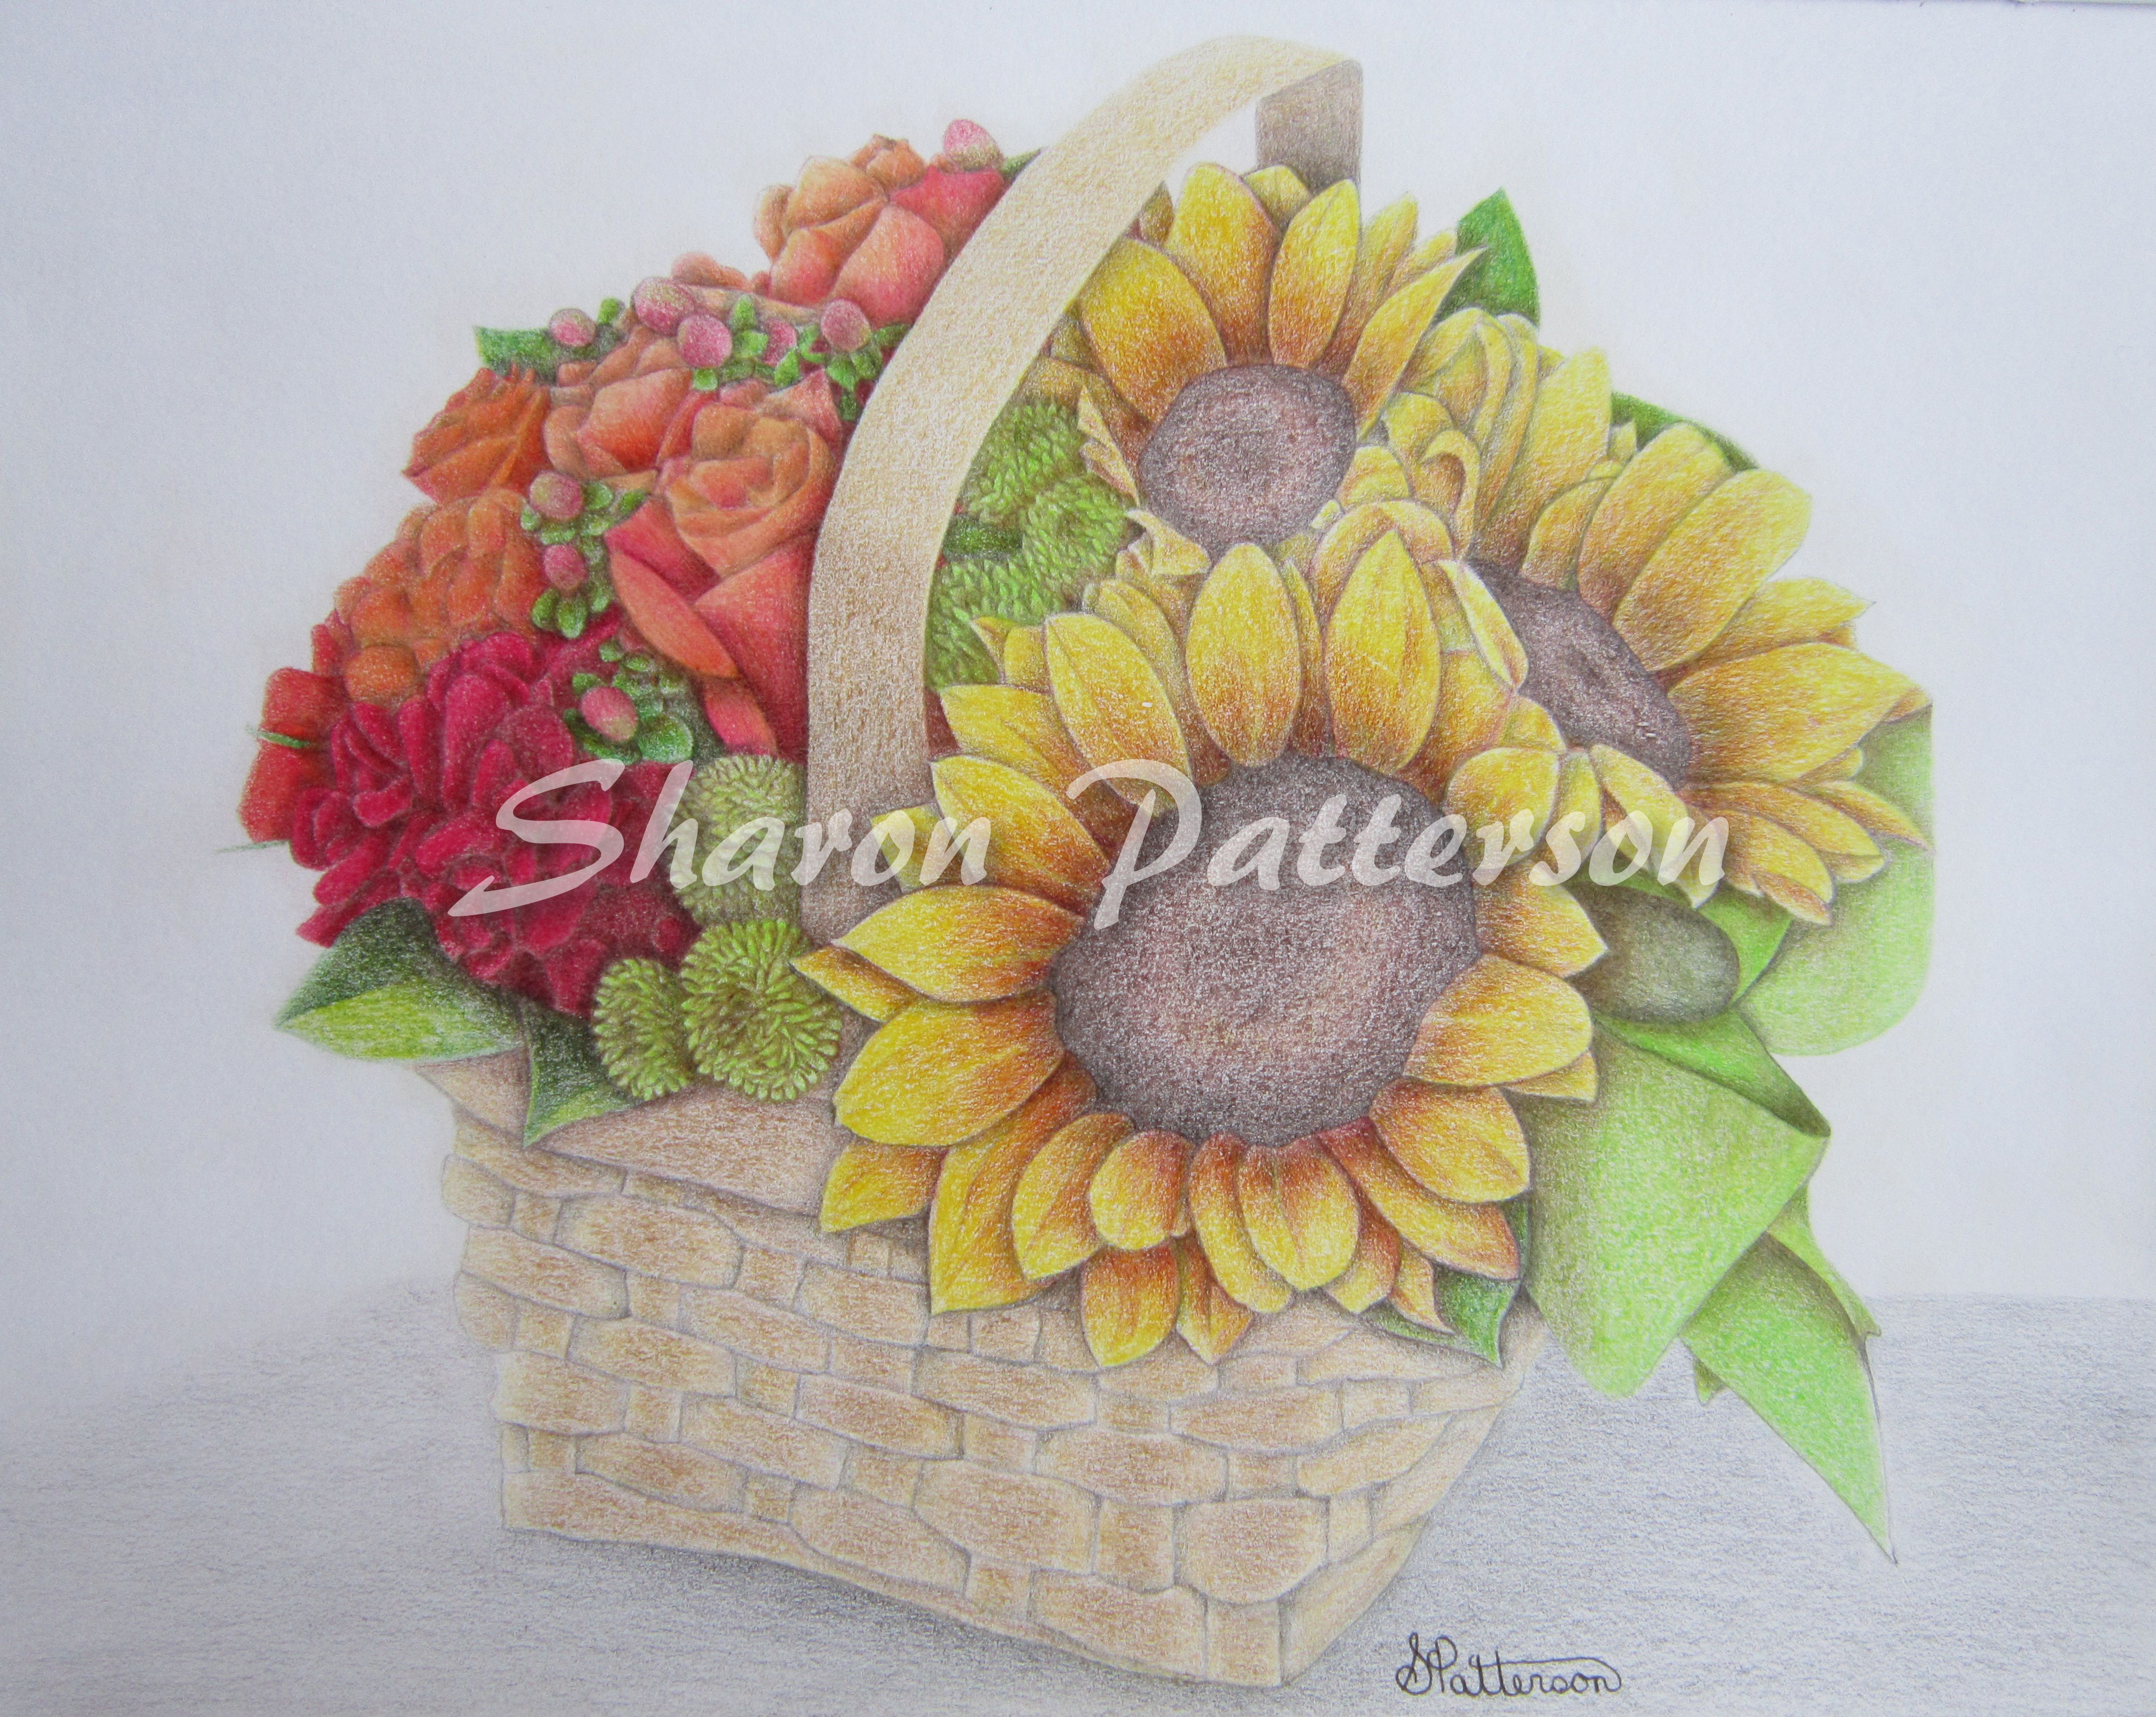 Drawing of flowers in a basket in coloured pencil on paper. Artwork by Sharon Patterson may be PURCHASED at: http://1-sharon-patterson.fineartamerica.com